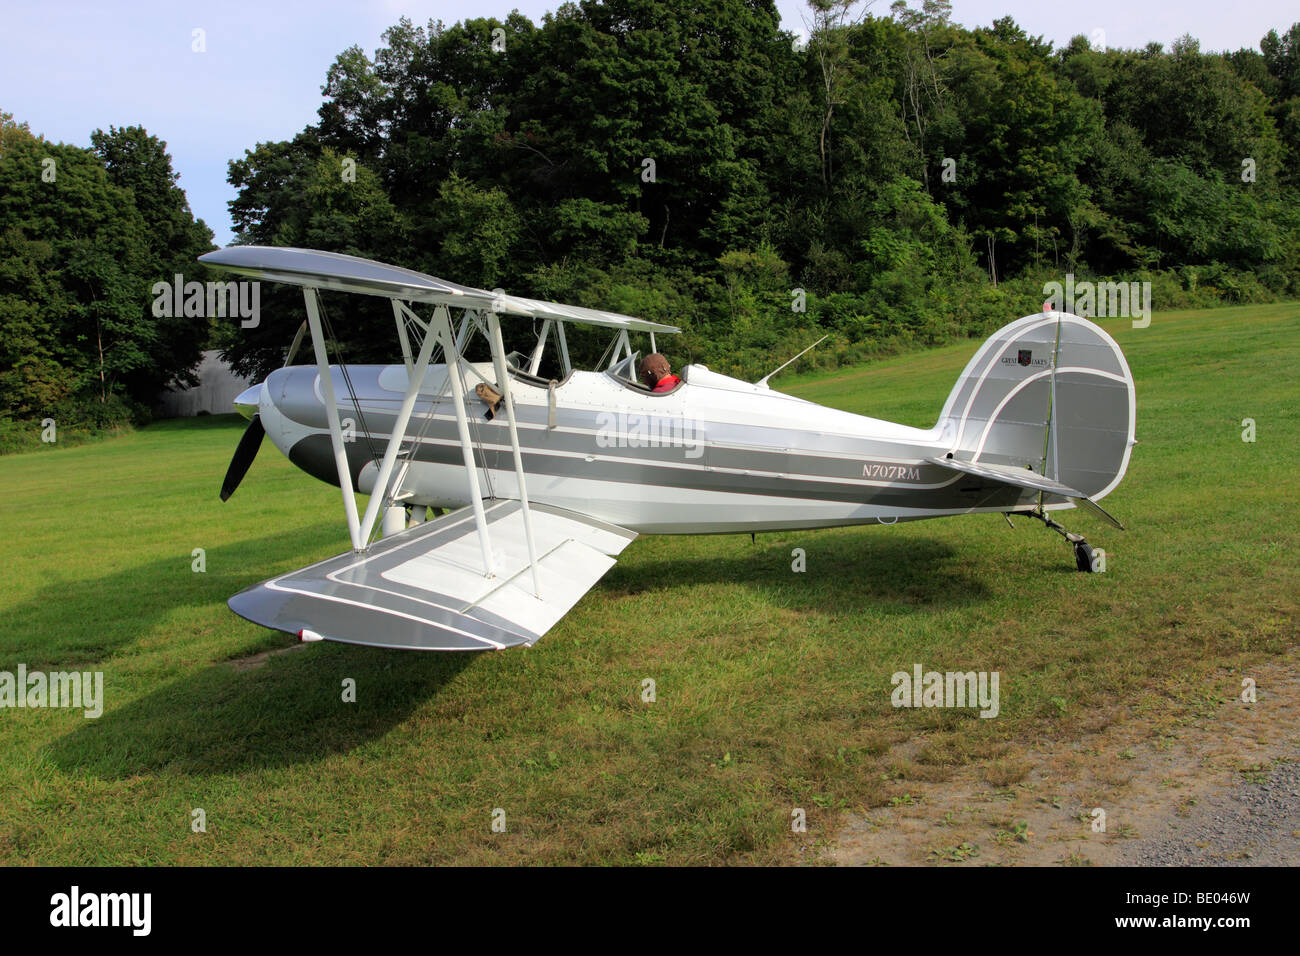 1976 Great Lakes Aircraft Company Model 2T-1A-2 bi-plane, ready for takeoff at historic Old Rhinebeck Aerodrome, - Stock Image